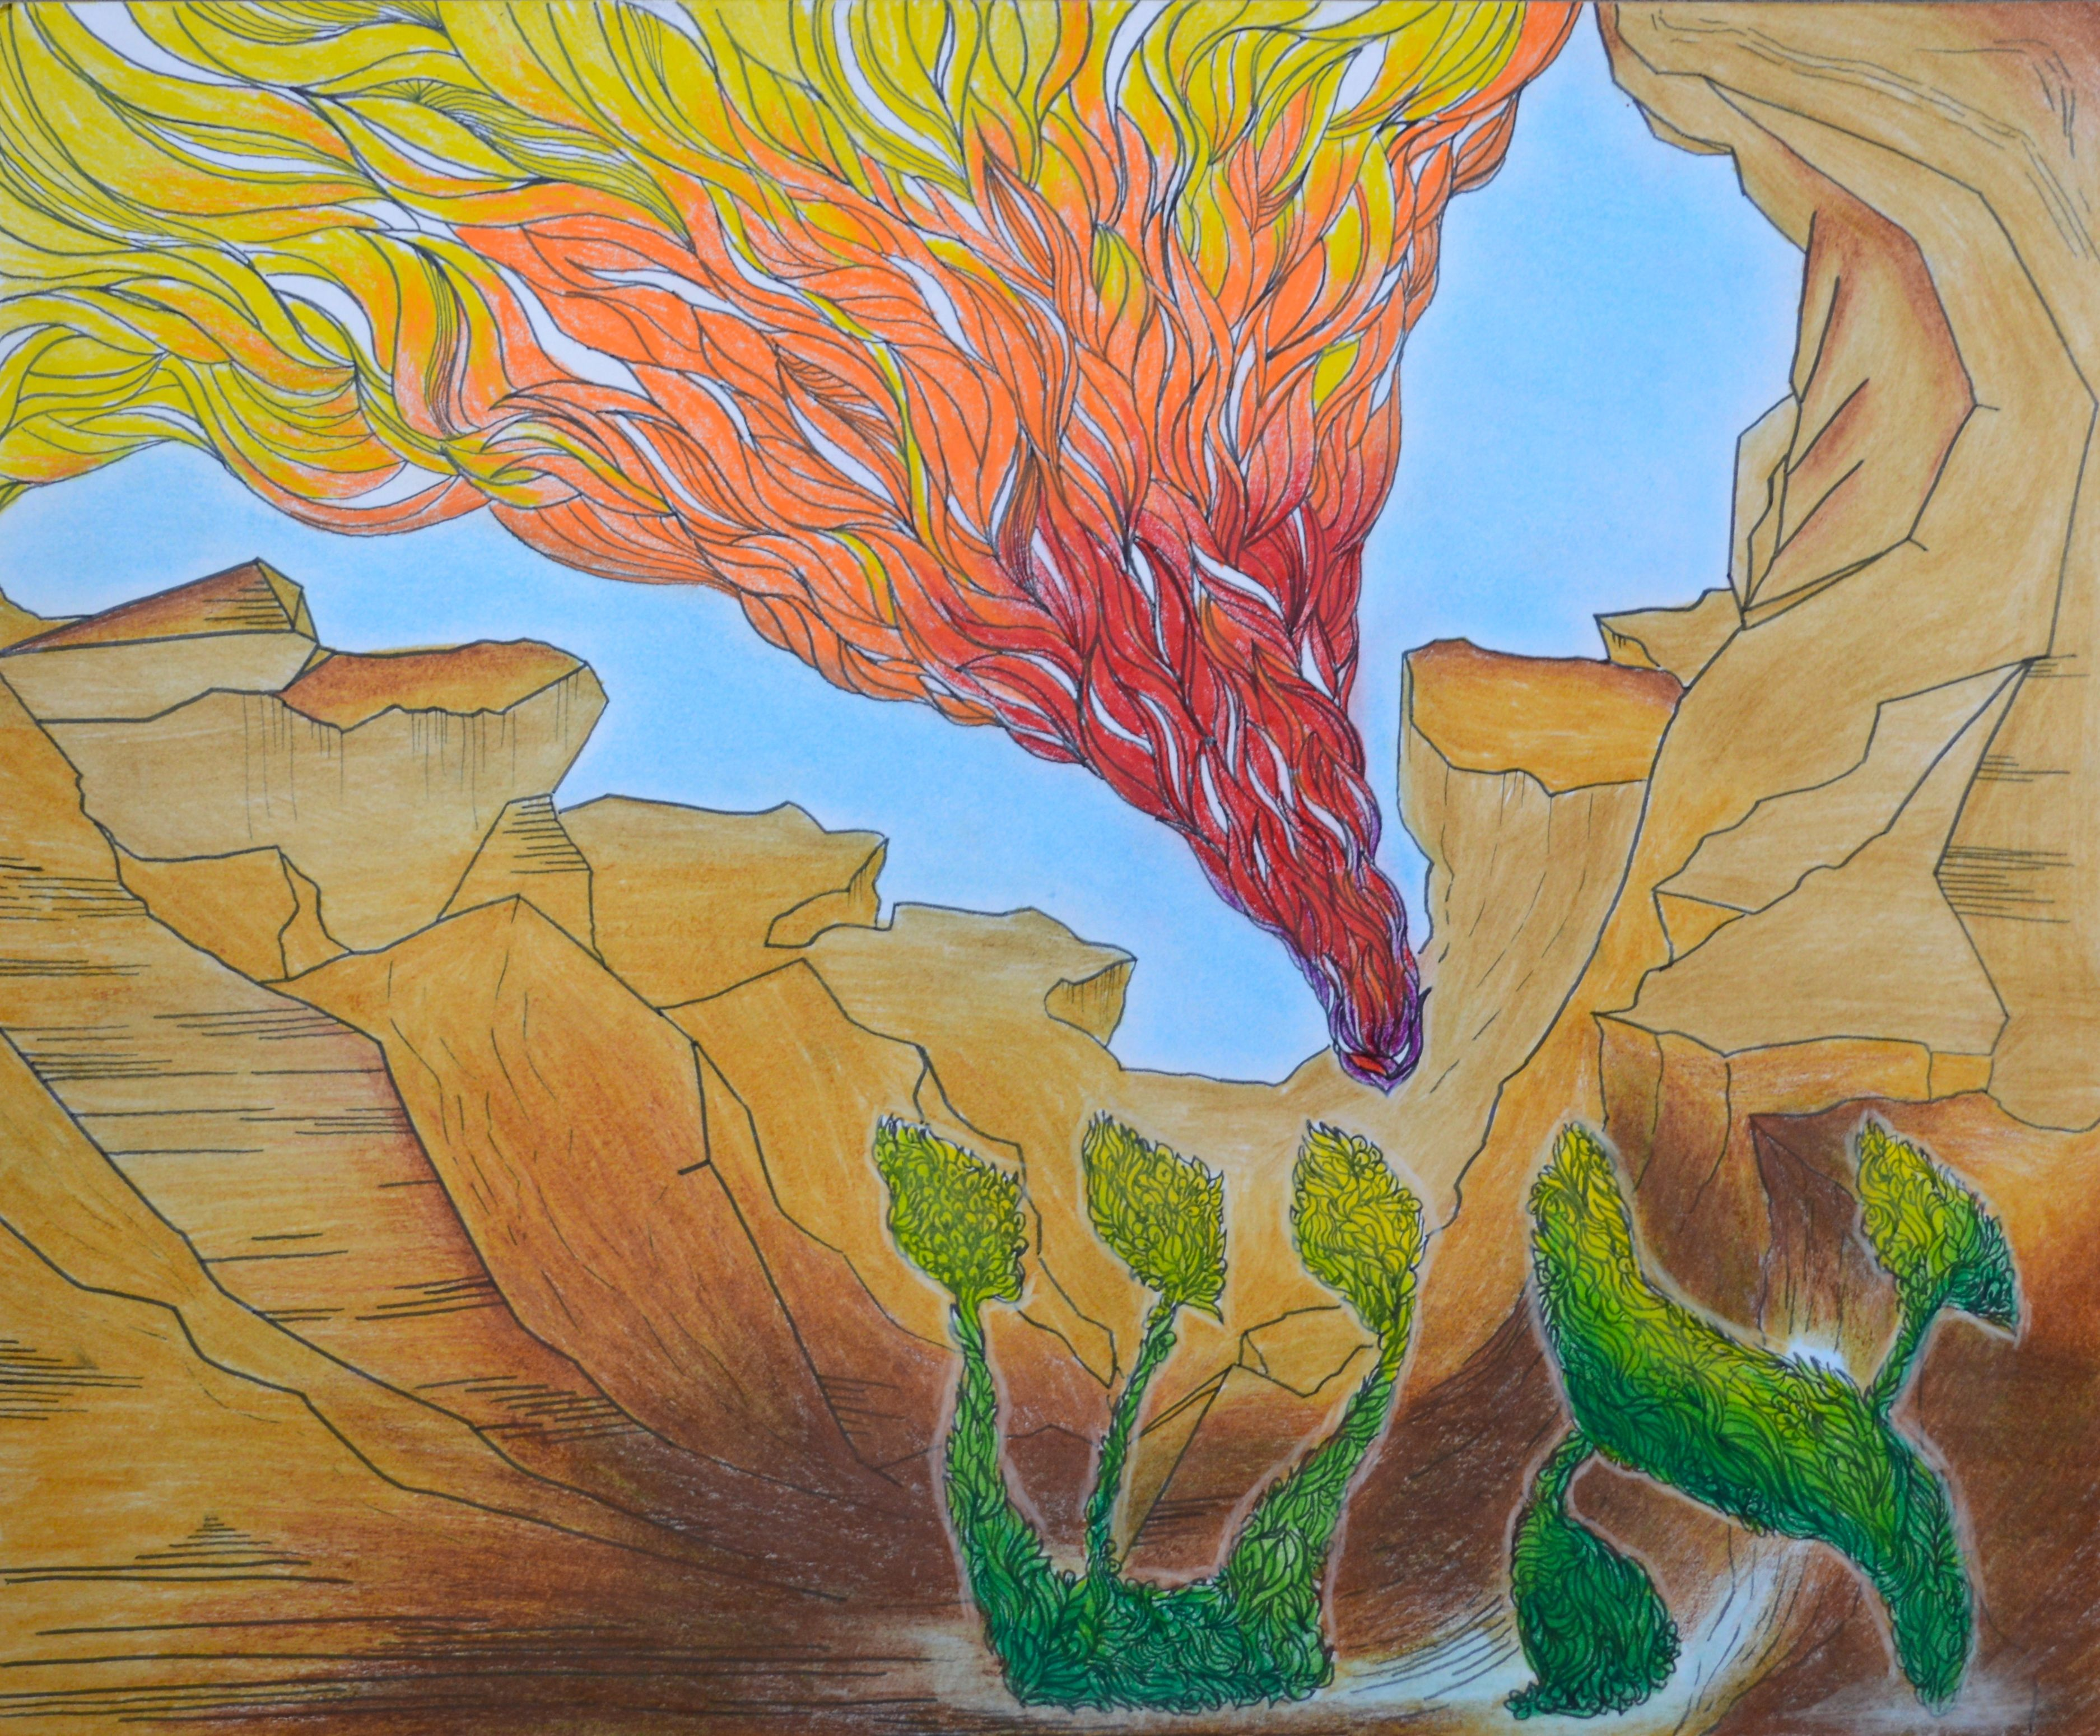 this drawing is a depiction of the burning bush that moses saw in